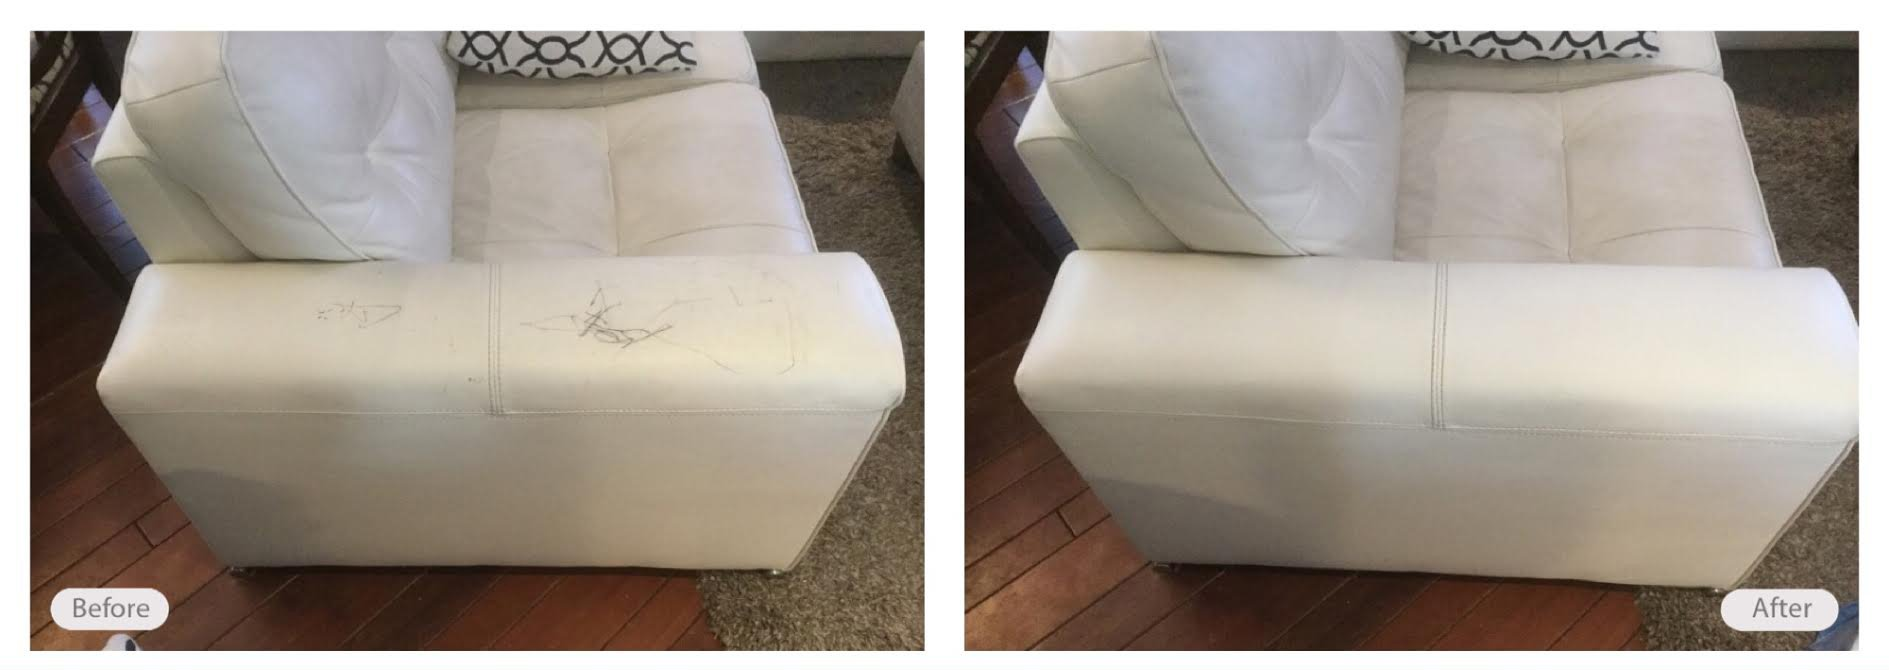 Pen marks on leather sofa removed and looking great again